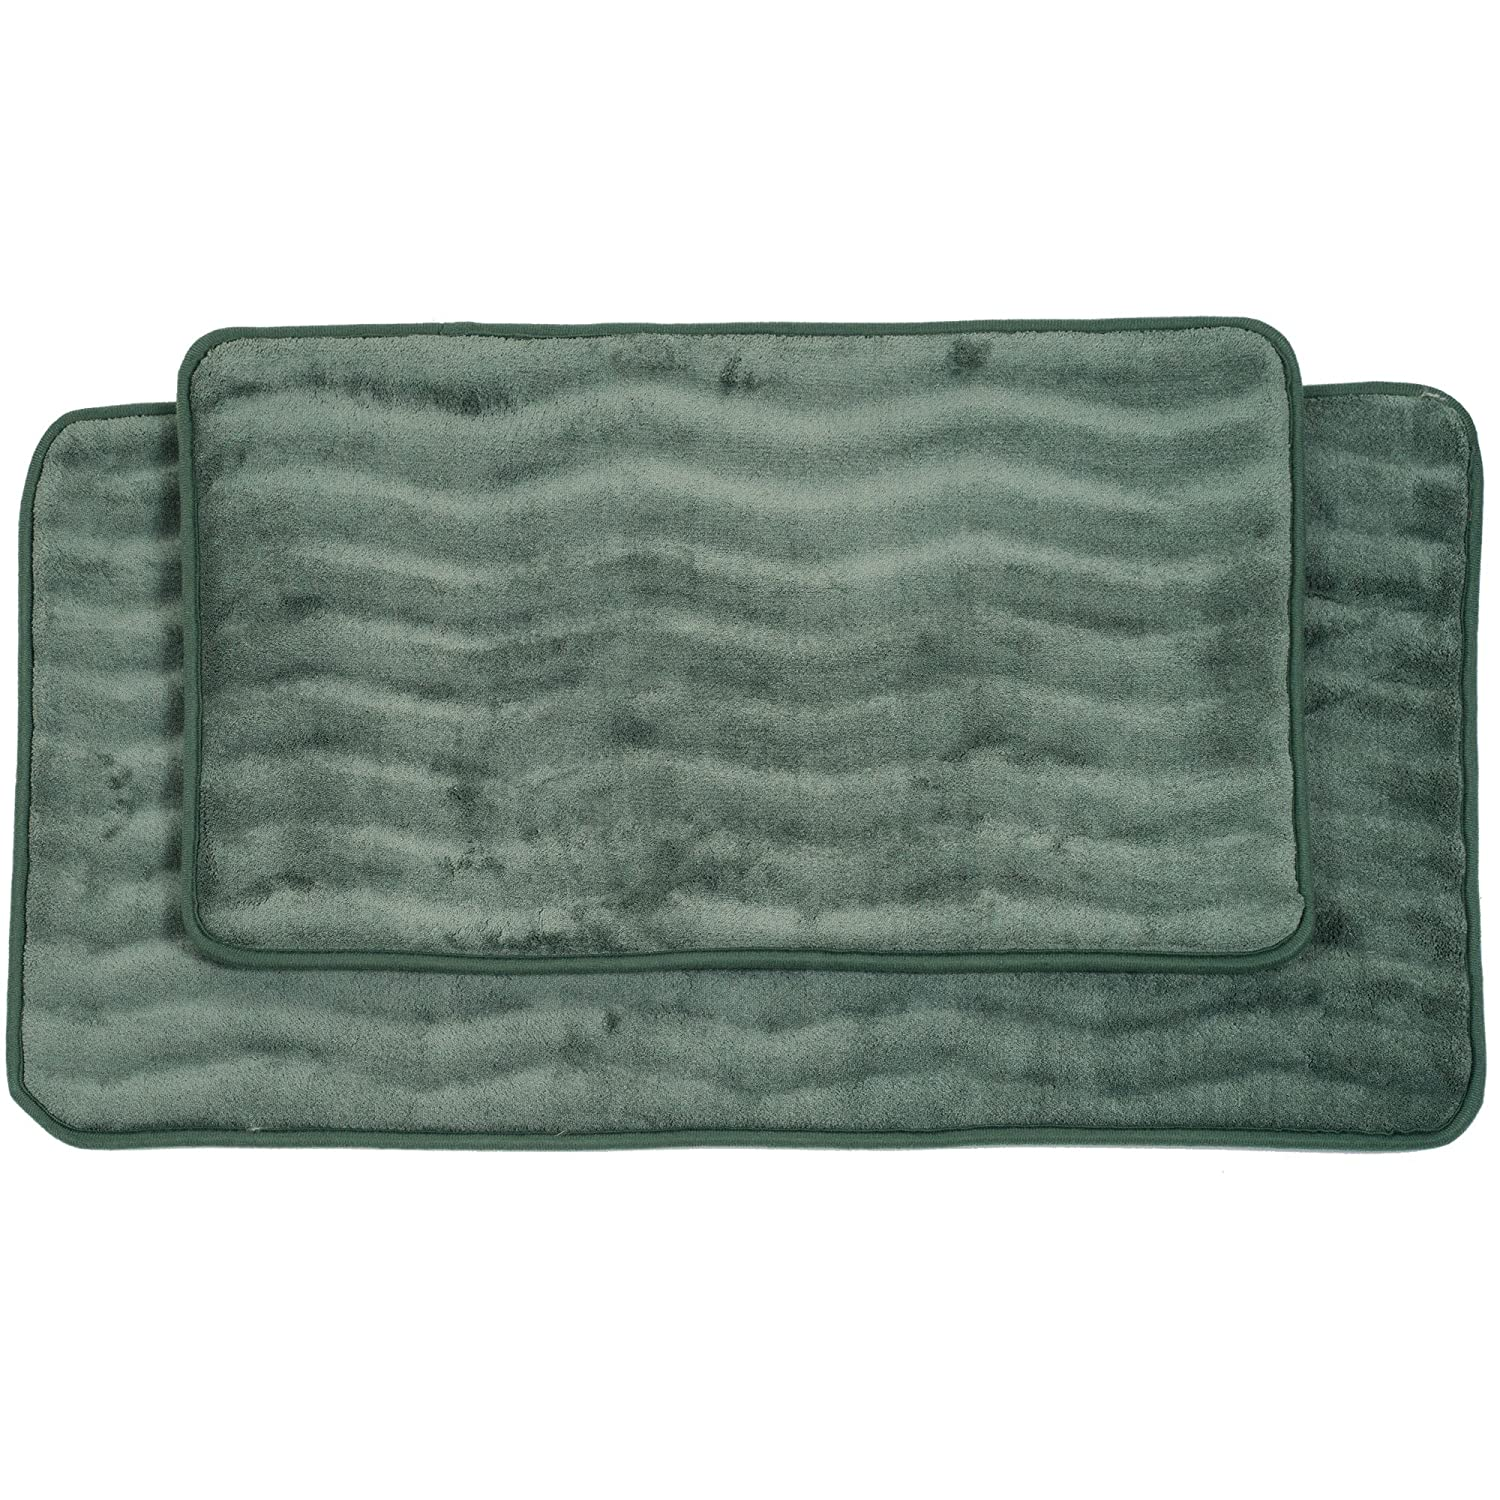 Lavish Home 2-Piece Memory Foam Bath Mat Set, Green